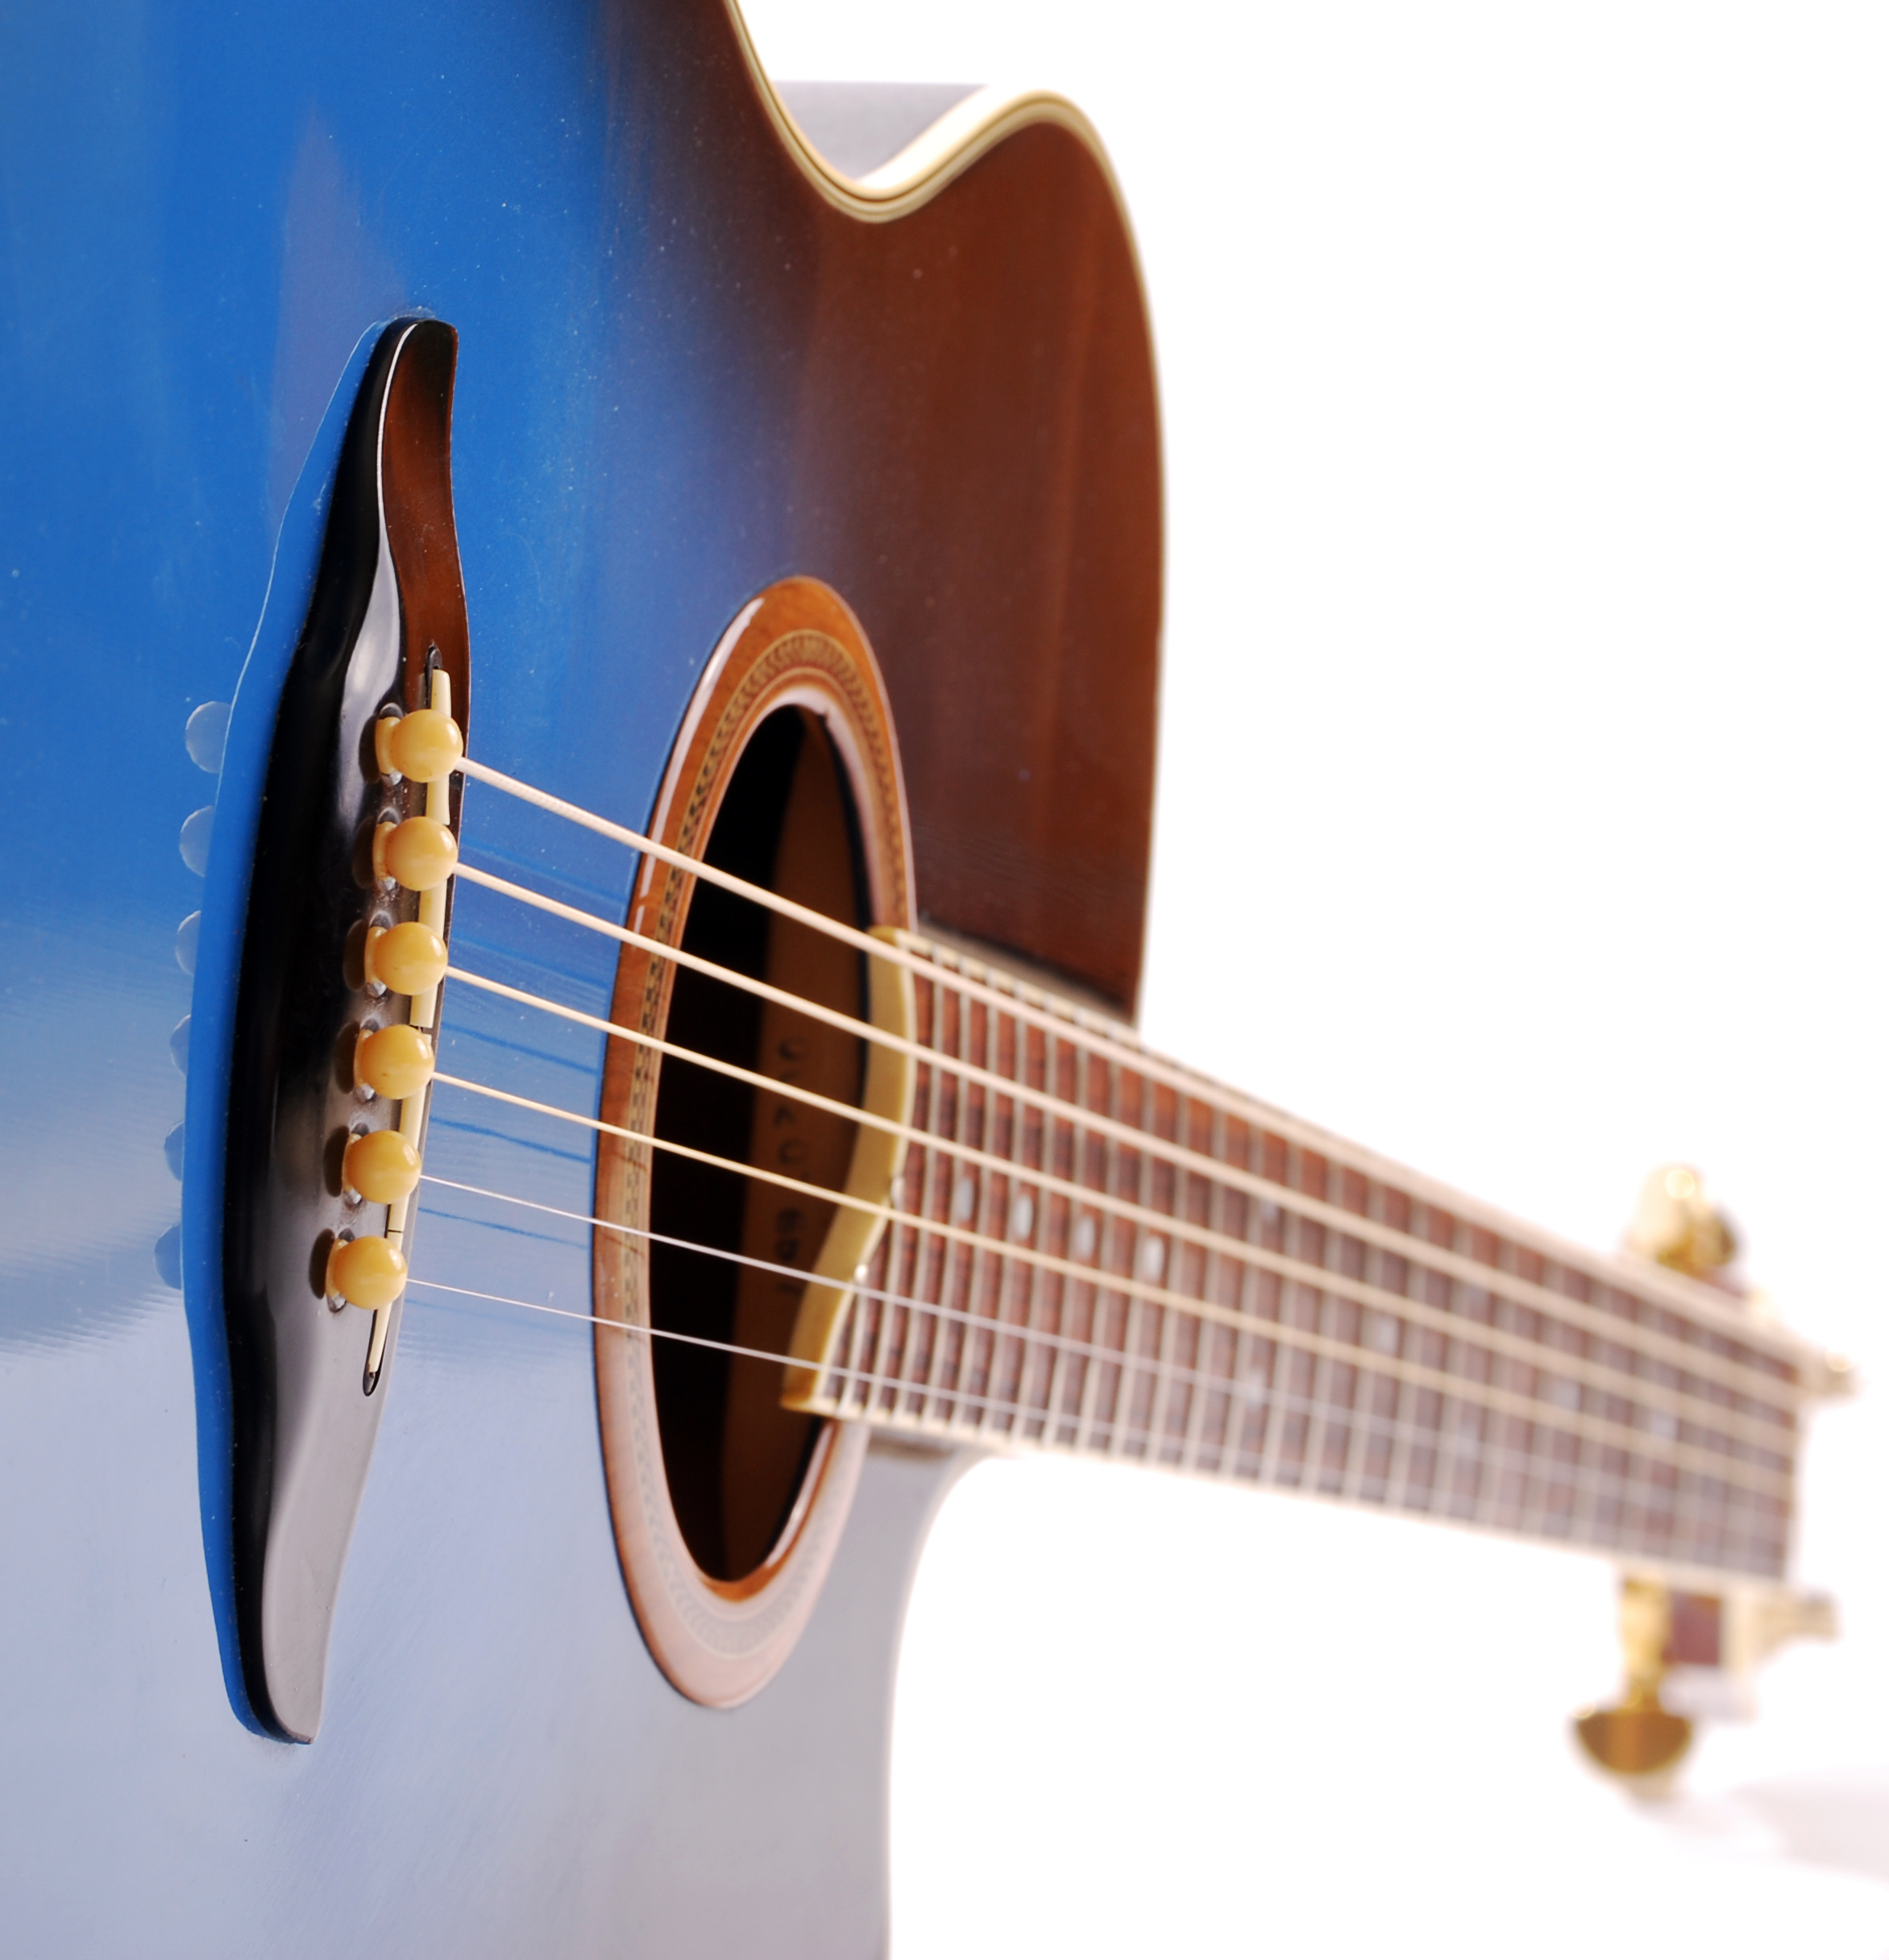 Blue guitar photo